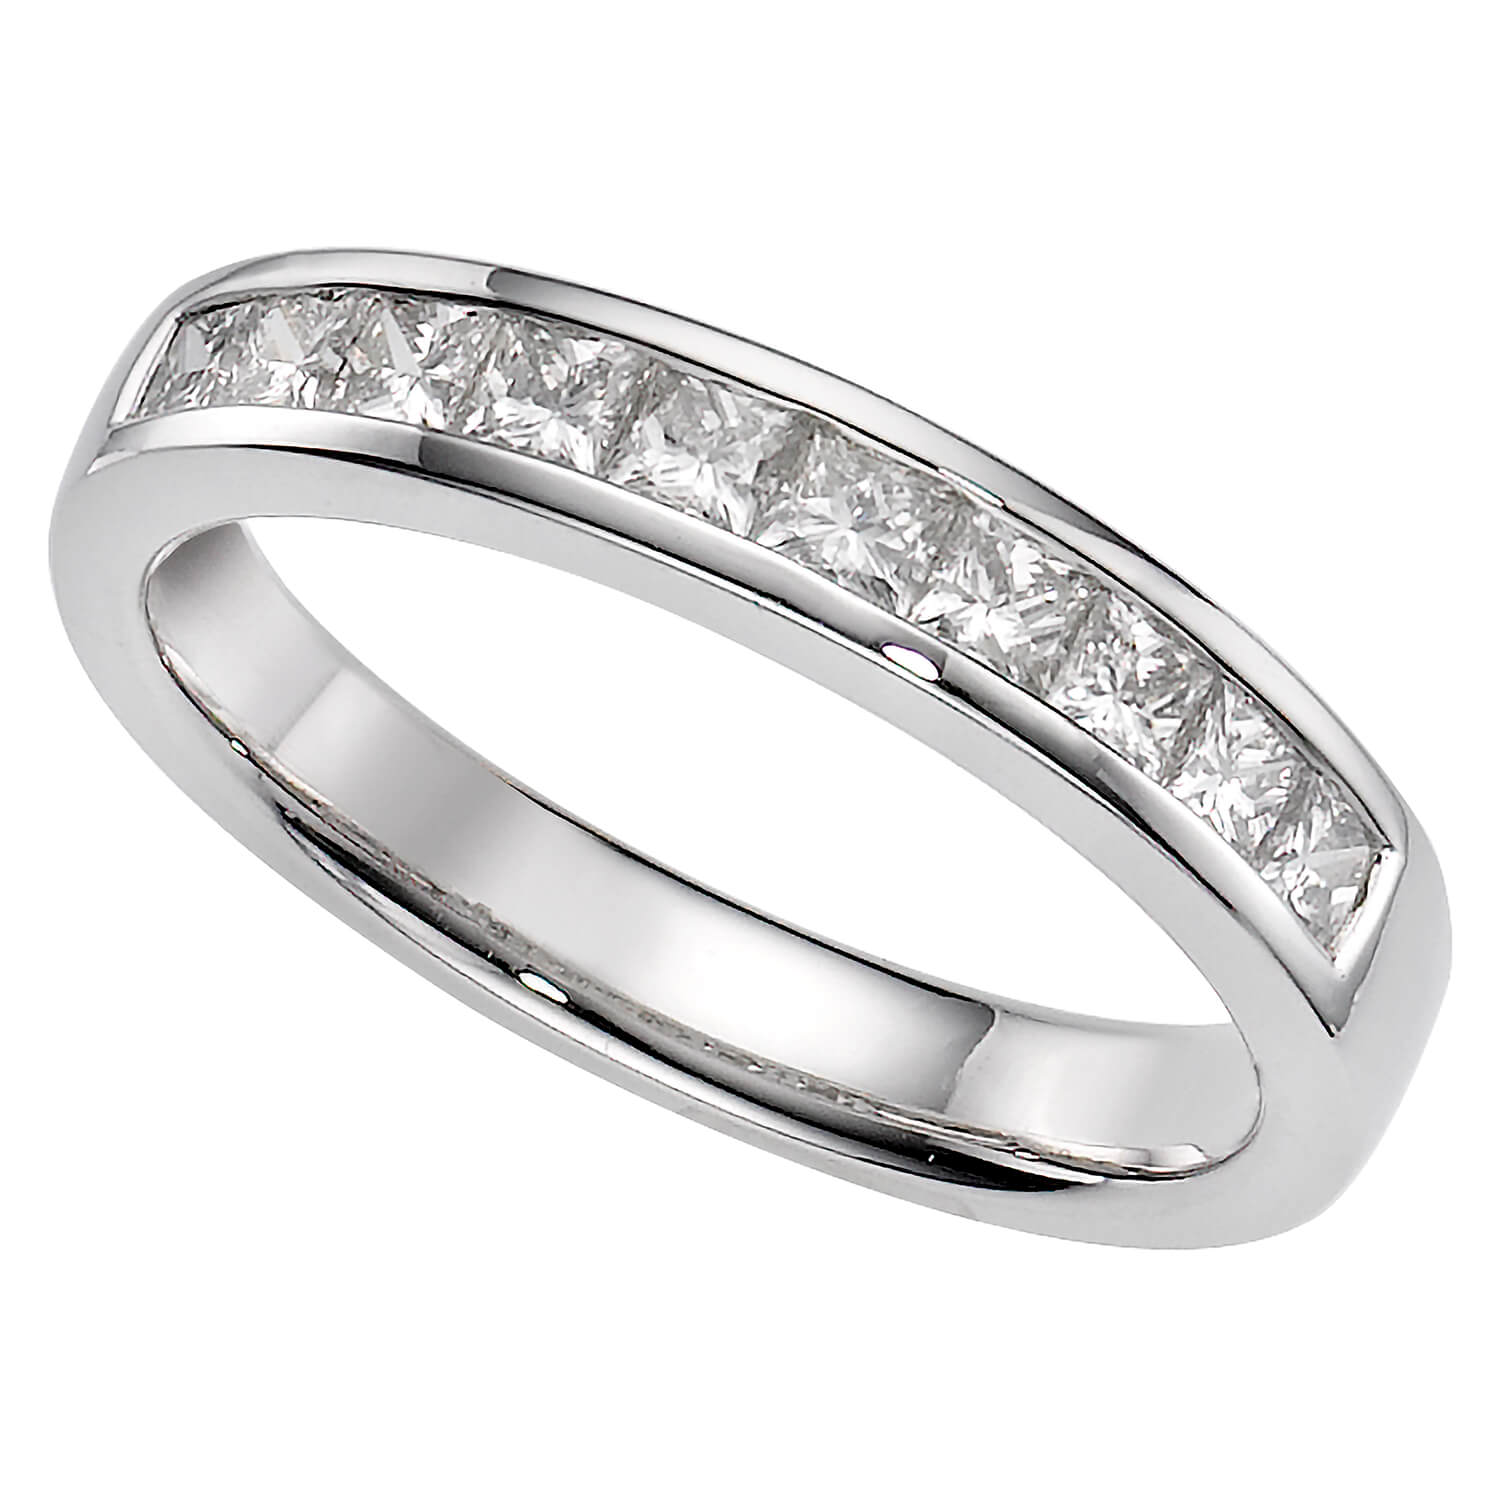 Platinum 0.50 carat princess cut diamond eternity ring